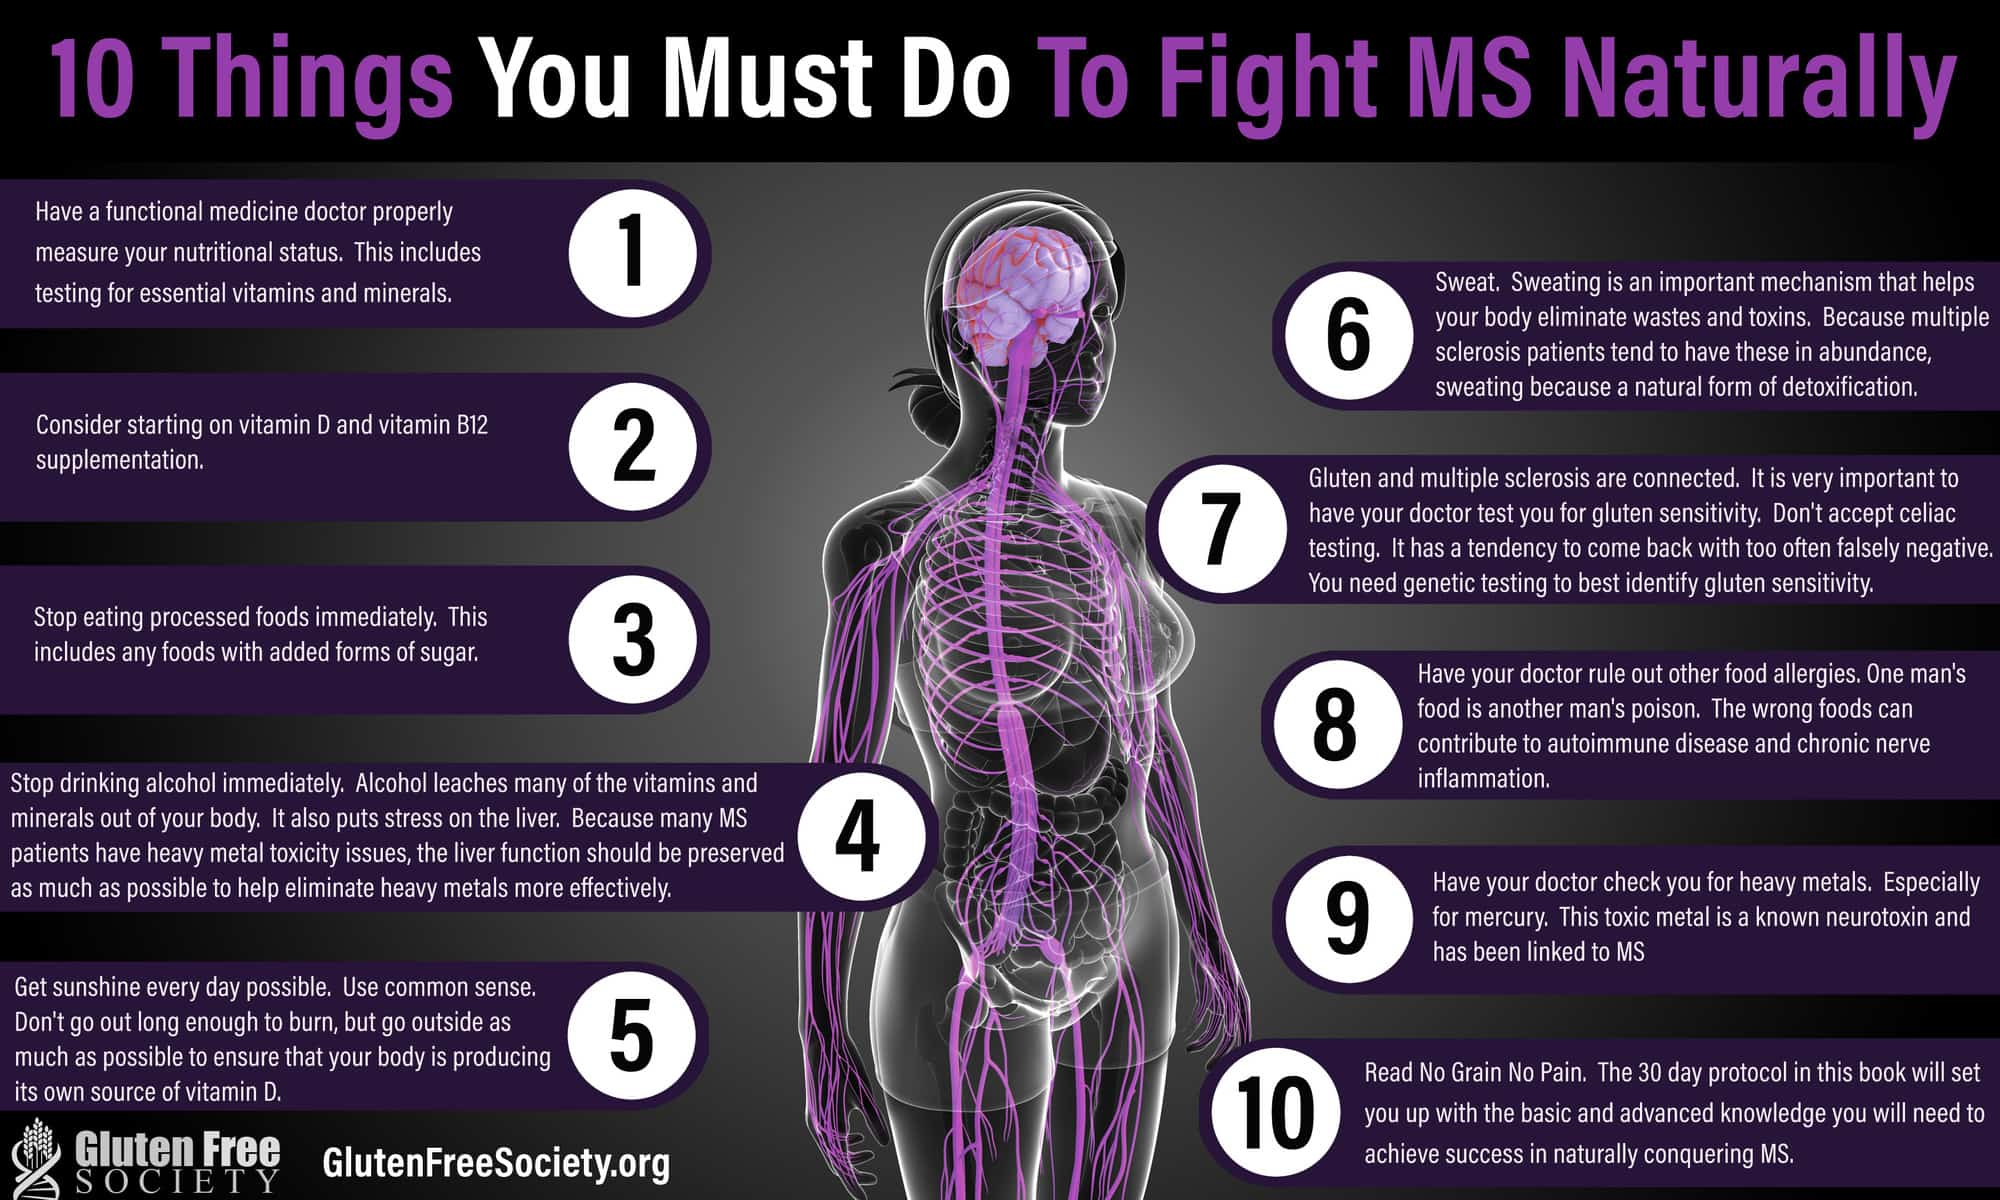 How to Deal With MS Naturally | Gluten-Free Society